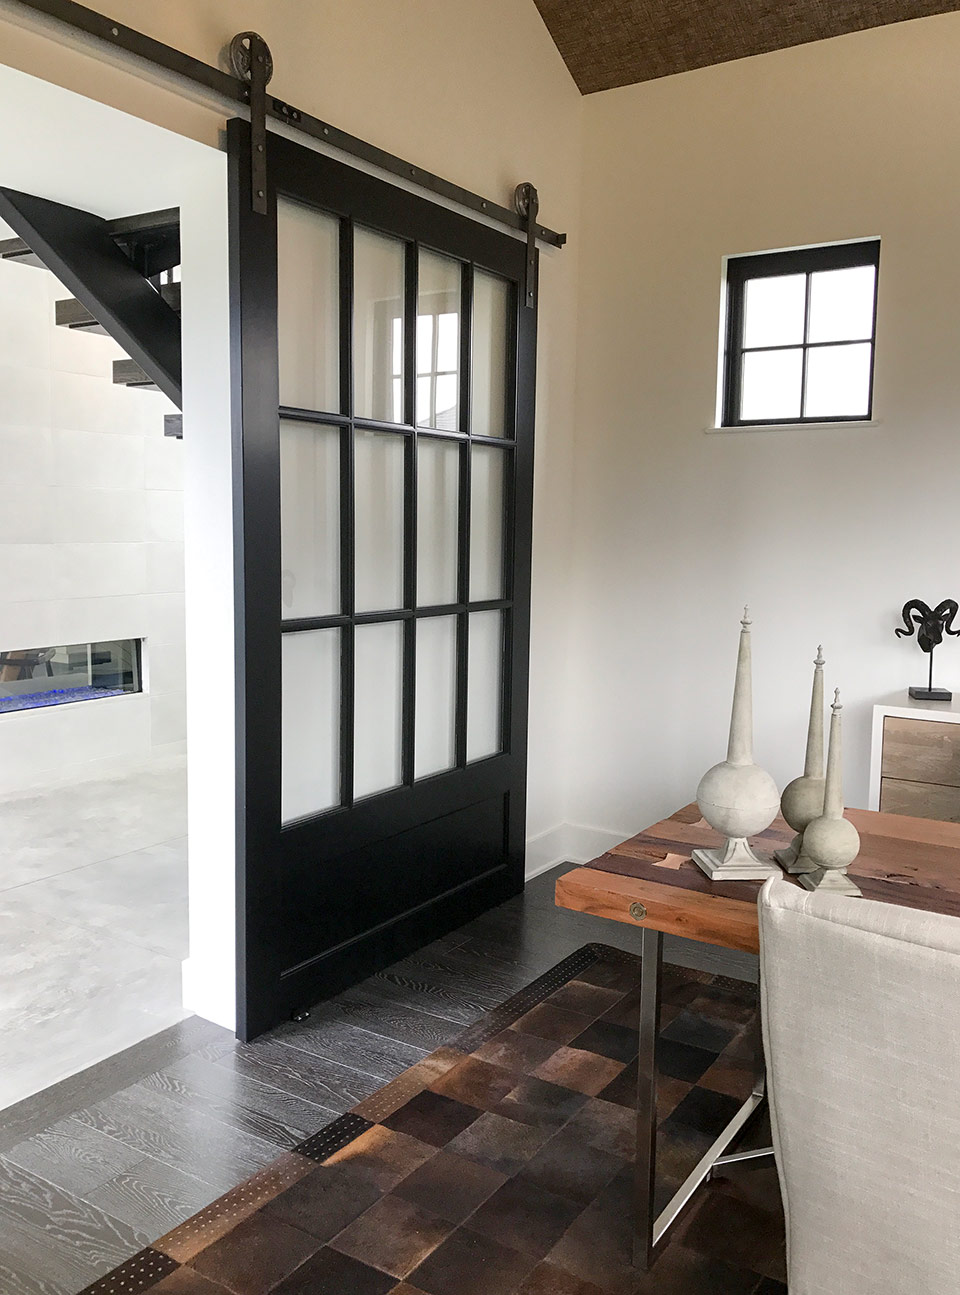 Home office with clean lines and unique decorating touches - gray wood floors, wide black barn door with window